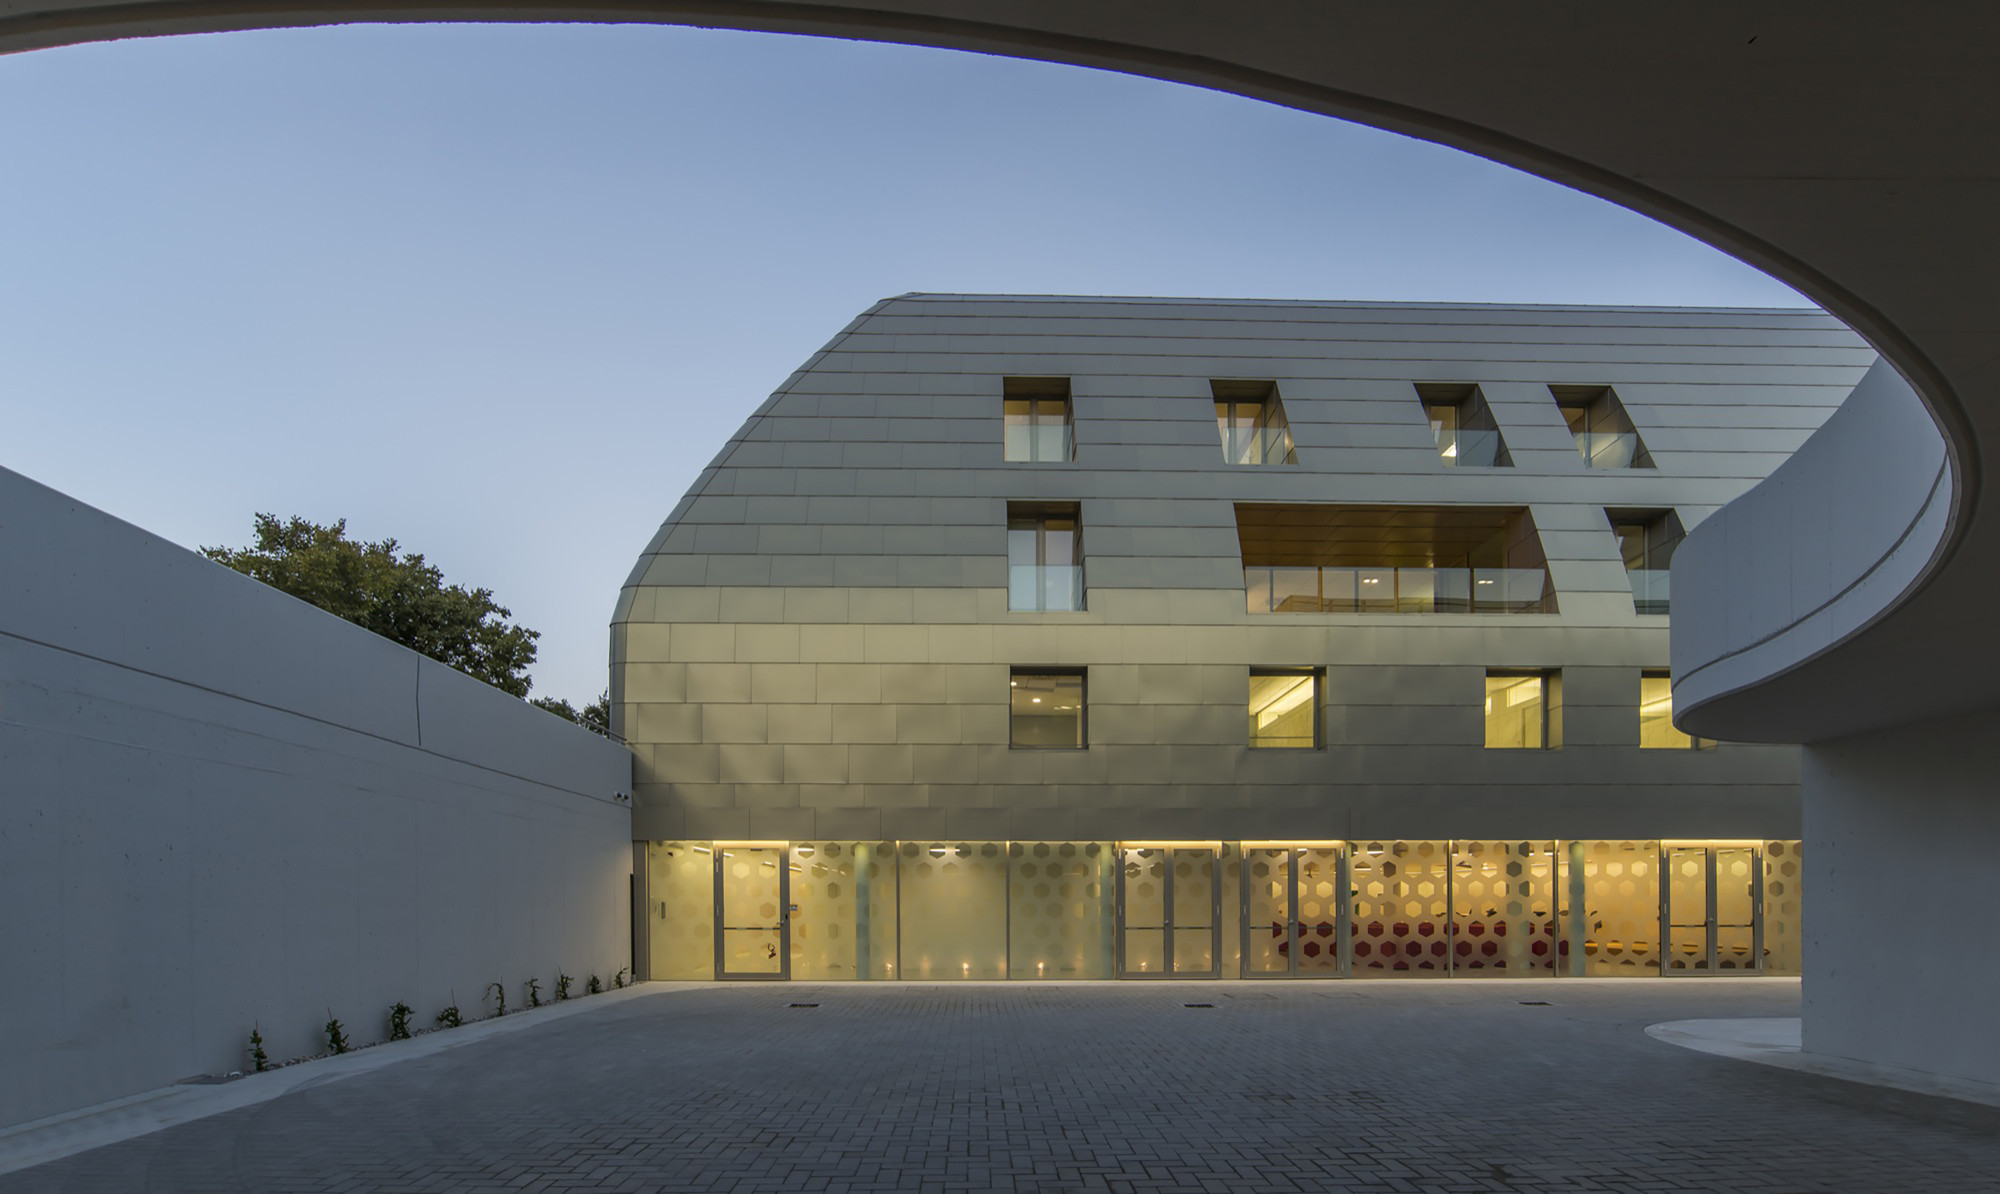 Bank of Pisa and Fornacette New HQ / Massimo Mariani, © Alessandro Ciampi